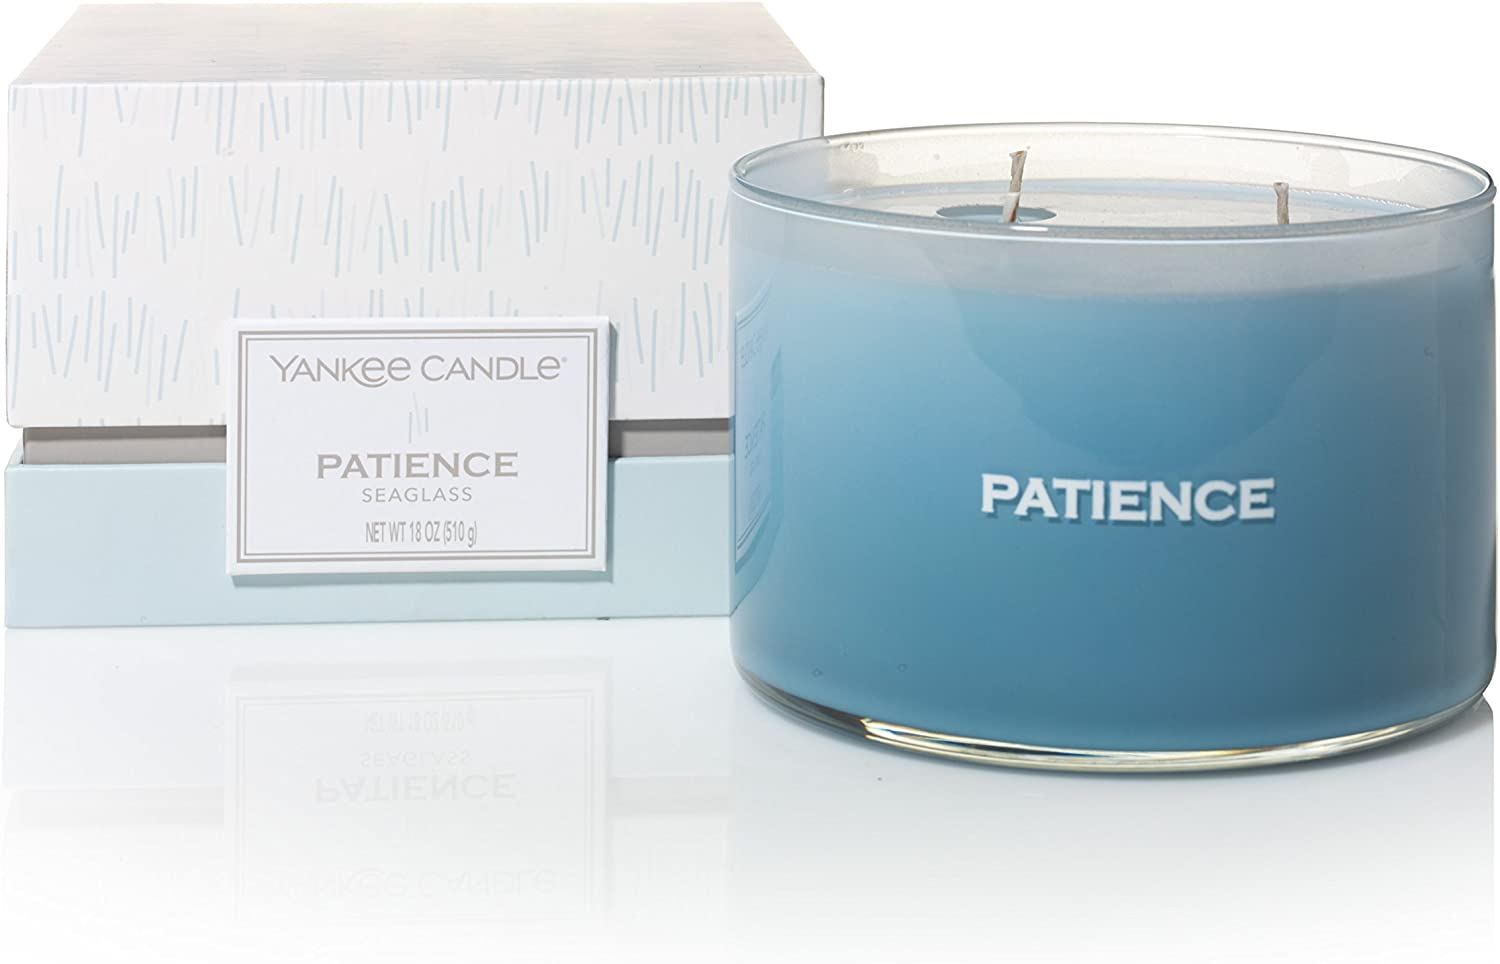 Yankee Candle Large Jar turquoise glass 623 G Limited Edition